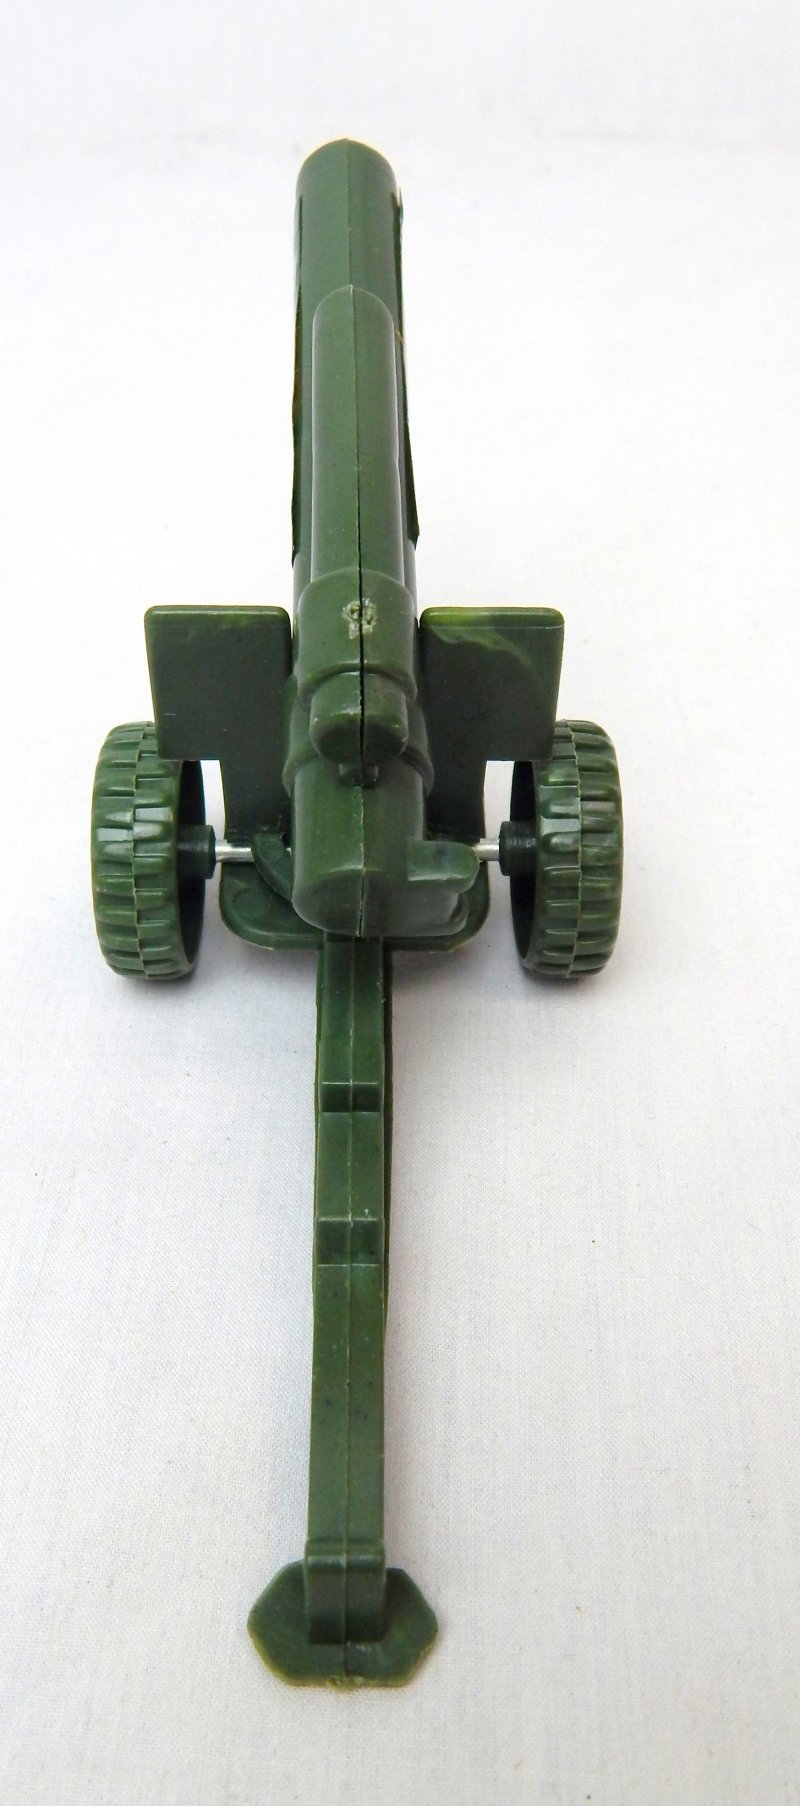 Image 2 of US Army 155mm Howitzer Style Plastic Heavy Artillery Cannon